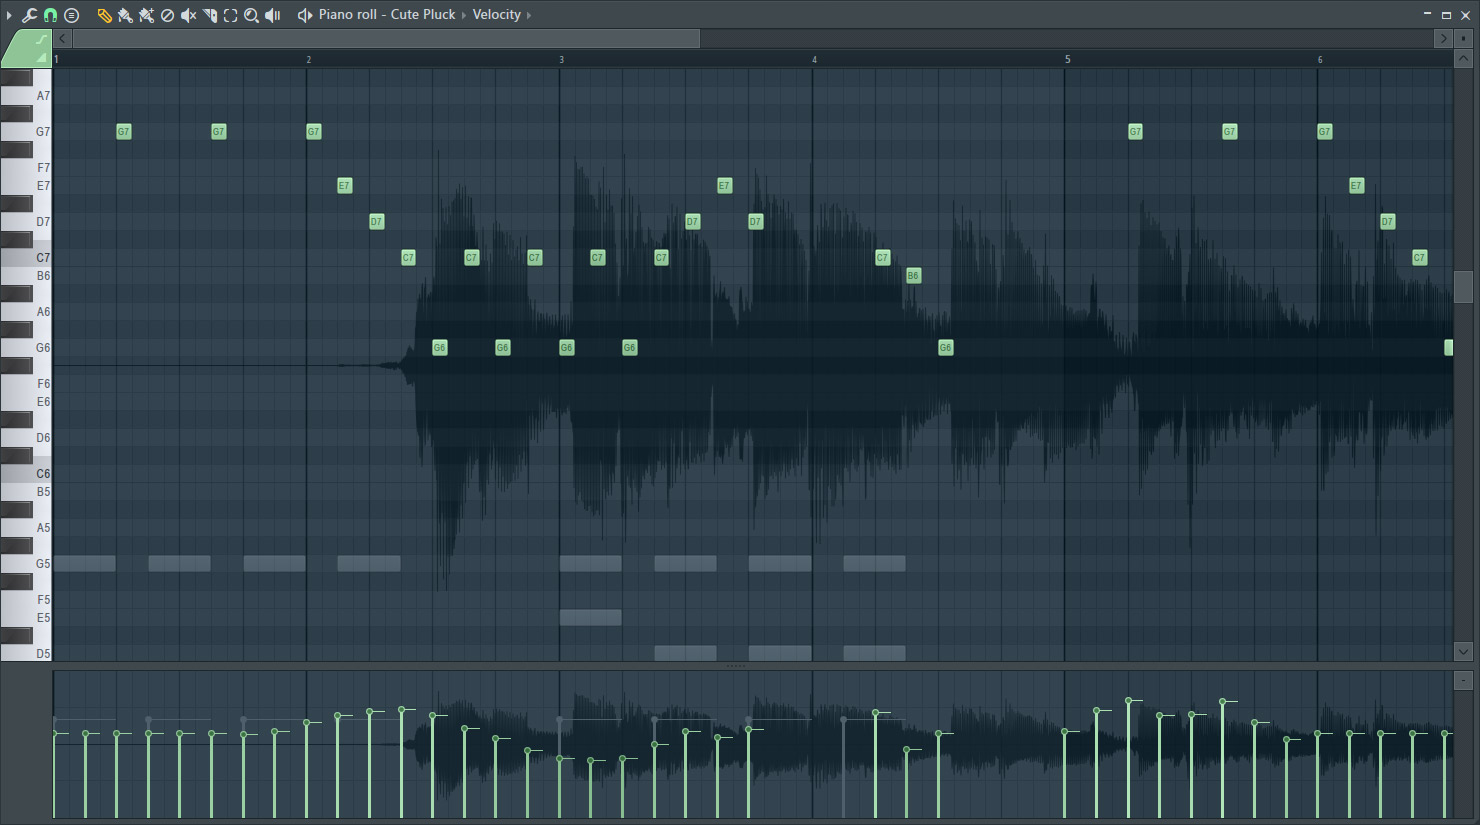 sebastien-angel-fl-studio-12-piano-roll